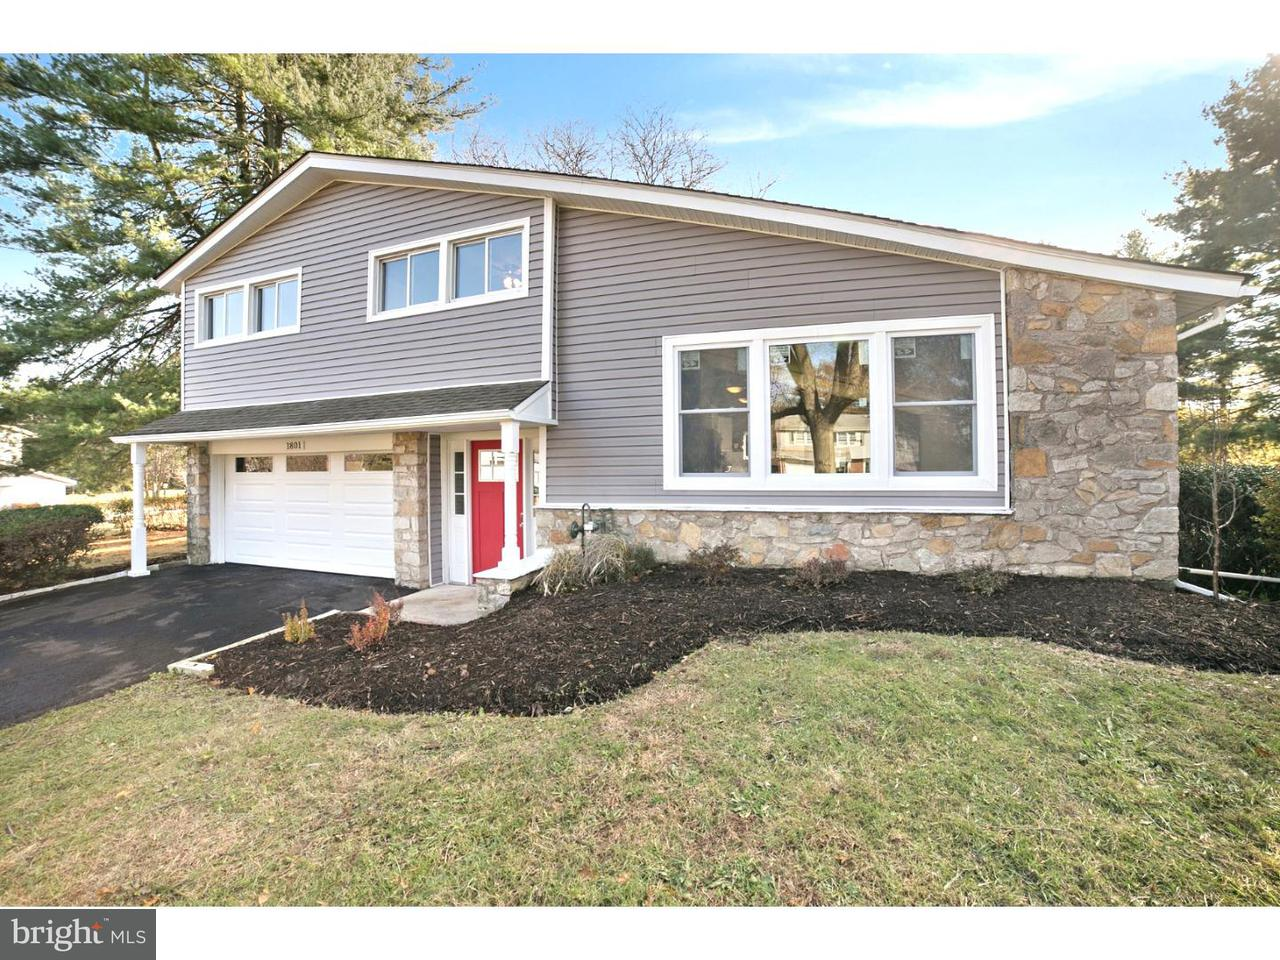 Single Family Home for Sale at 1801 FARMVIEW Road Maple Glen, Pennsylvania 19002 United States